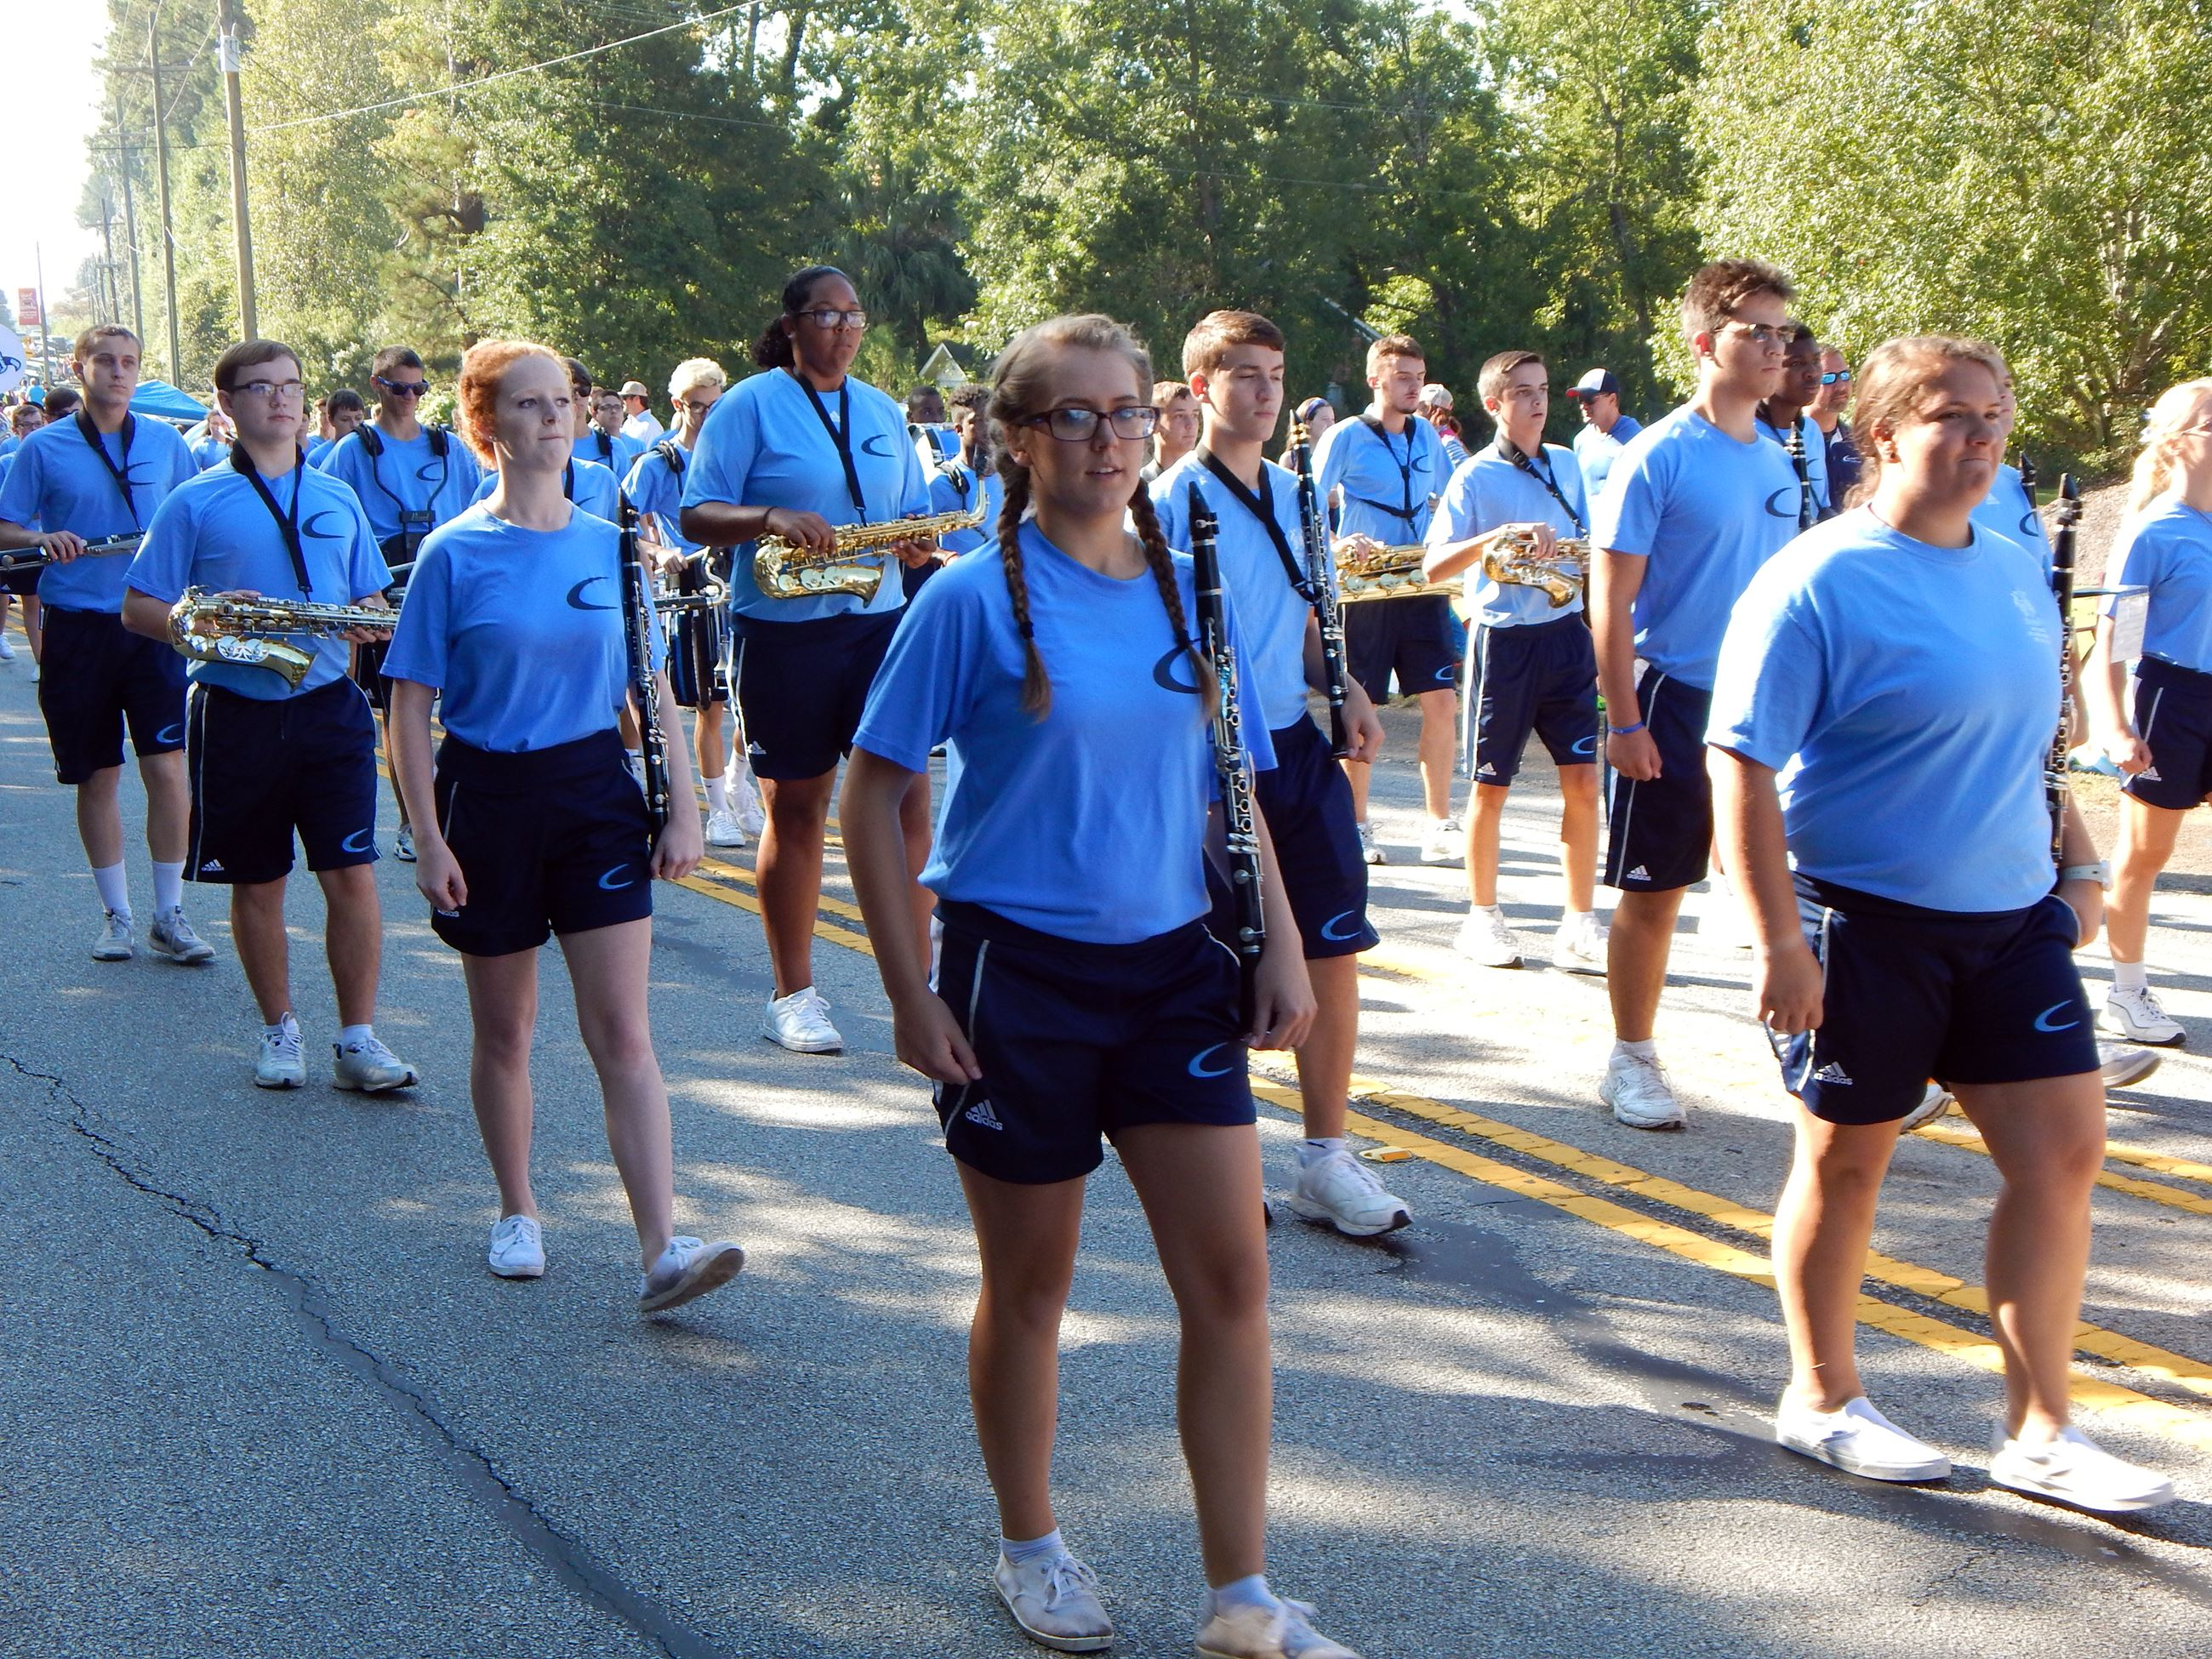 CHS Marching Band walking